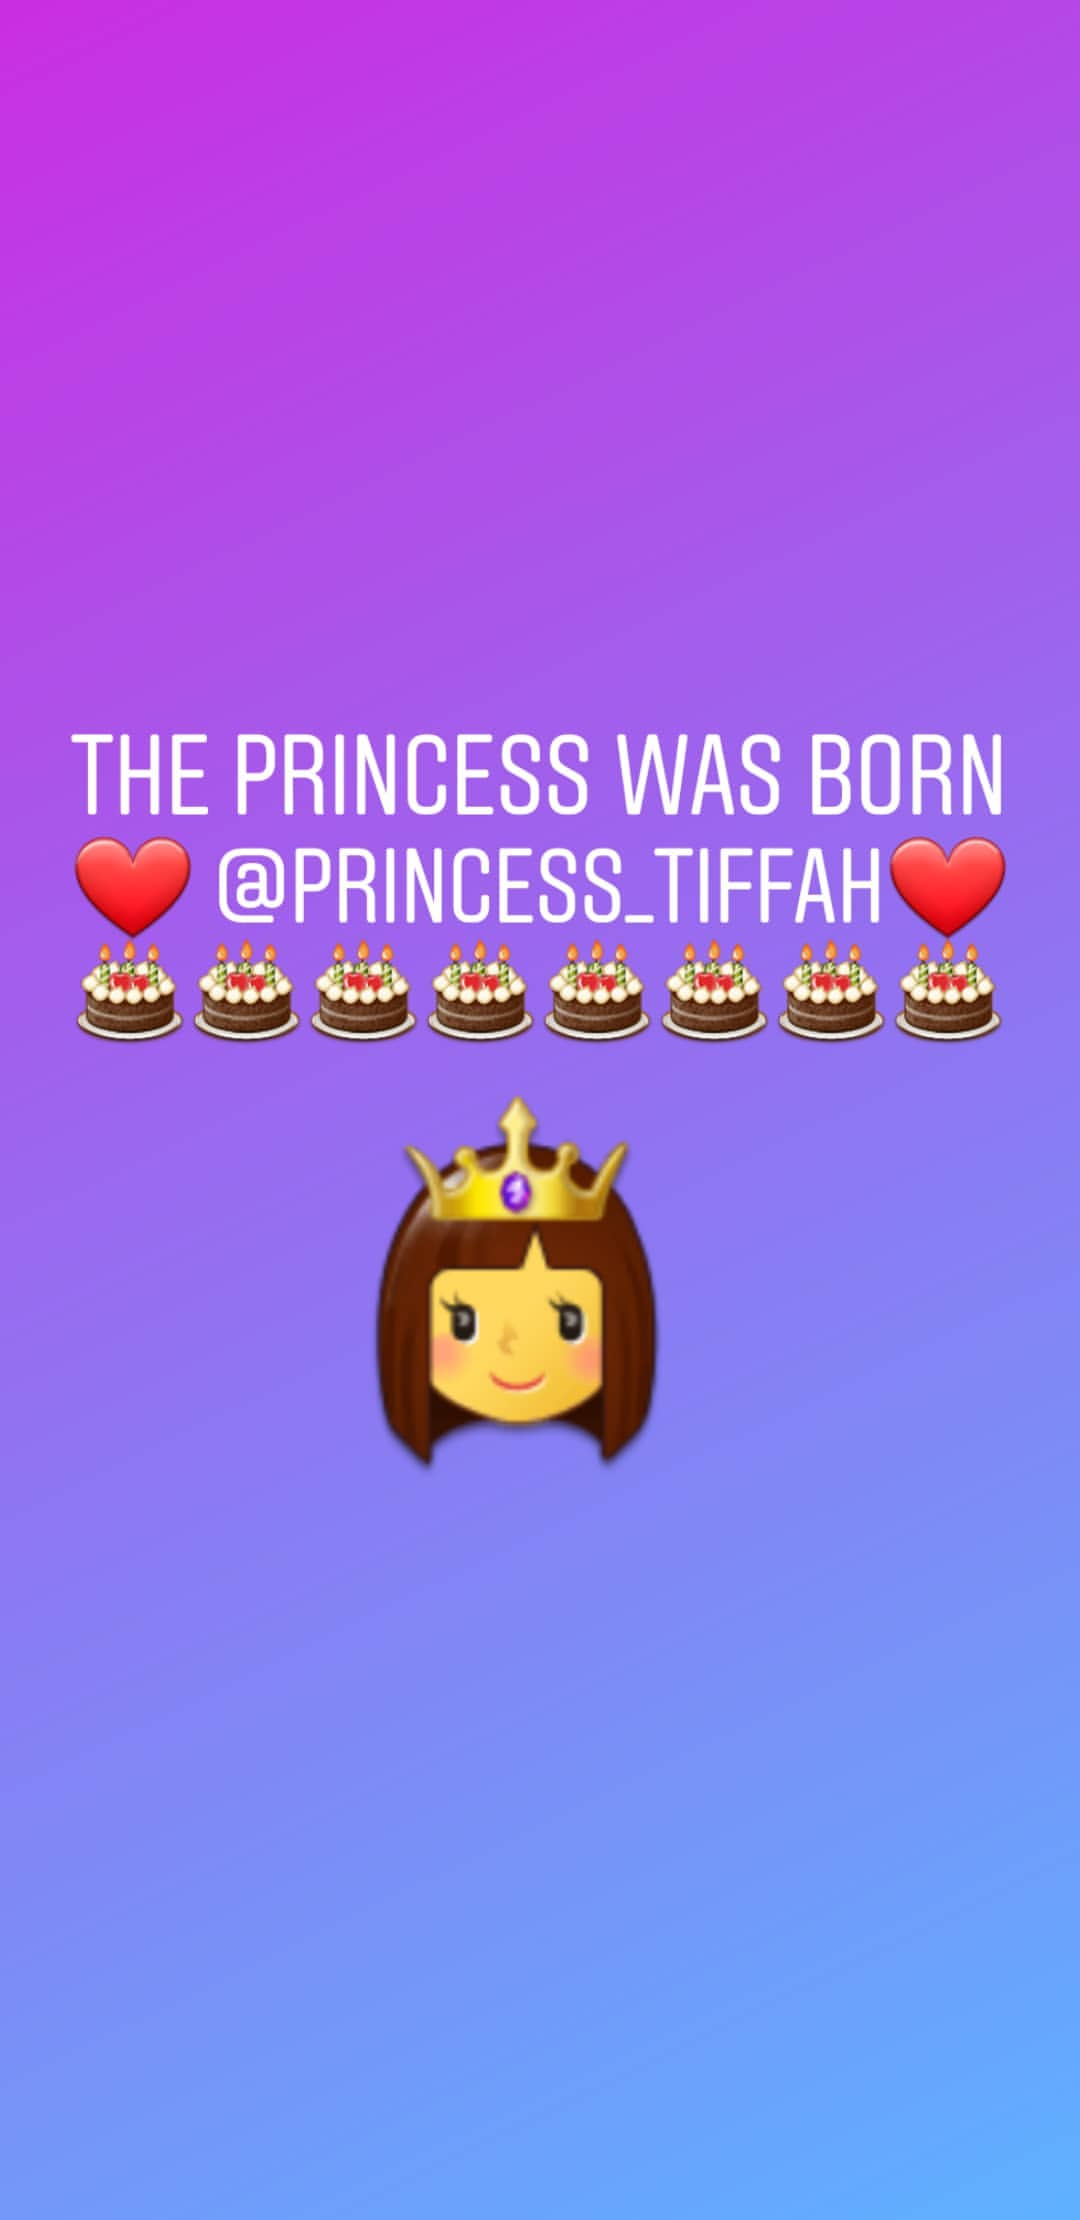 Princess Tiffah